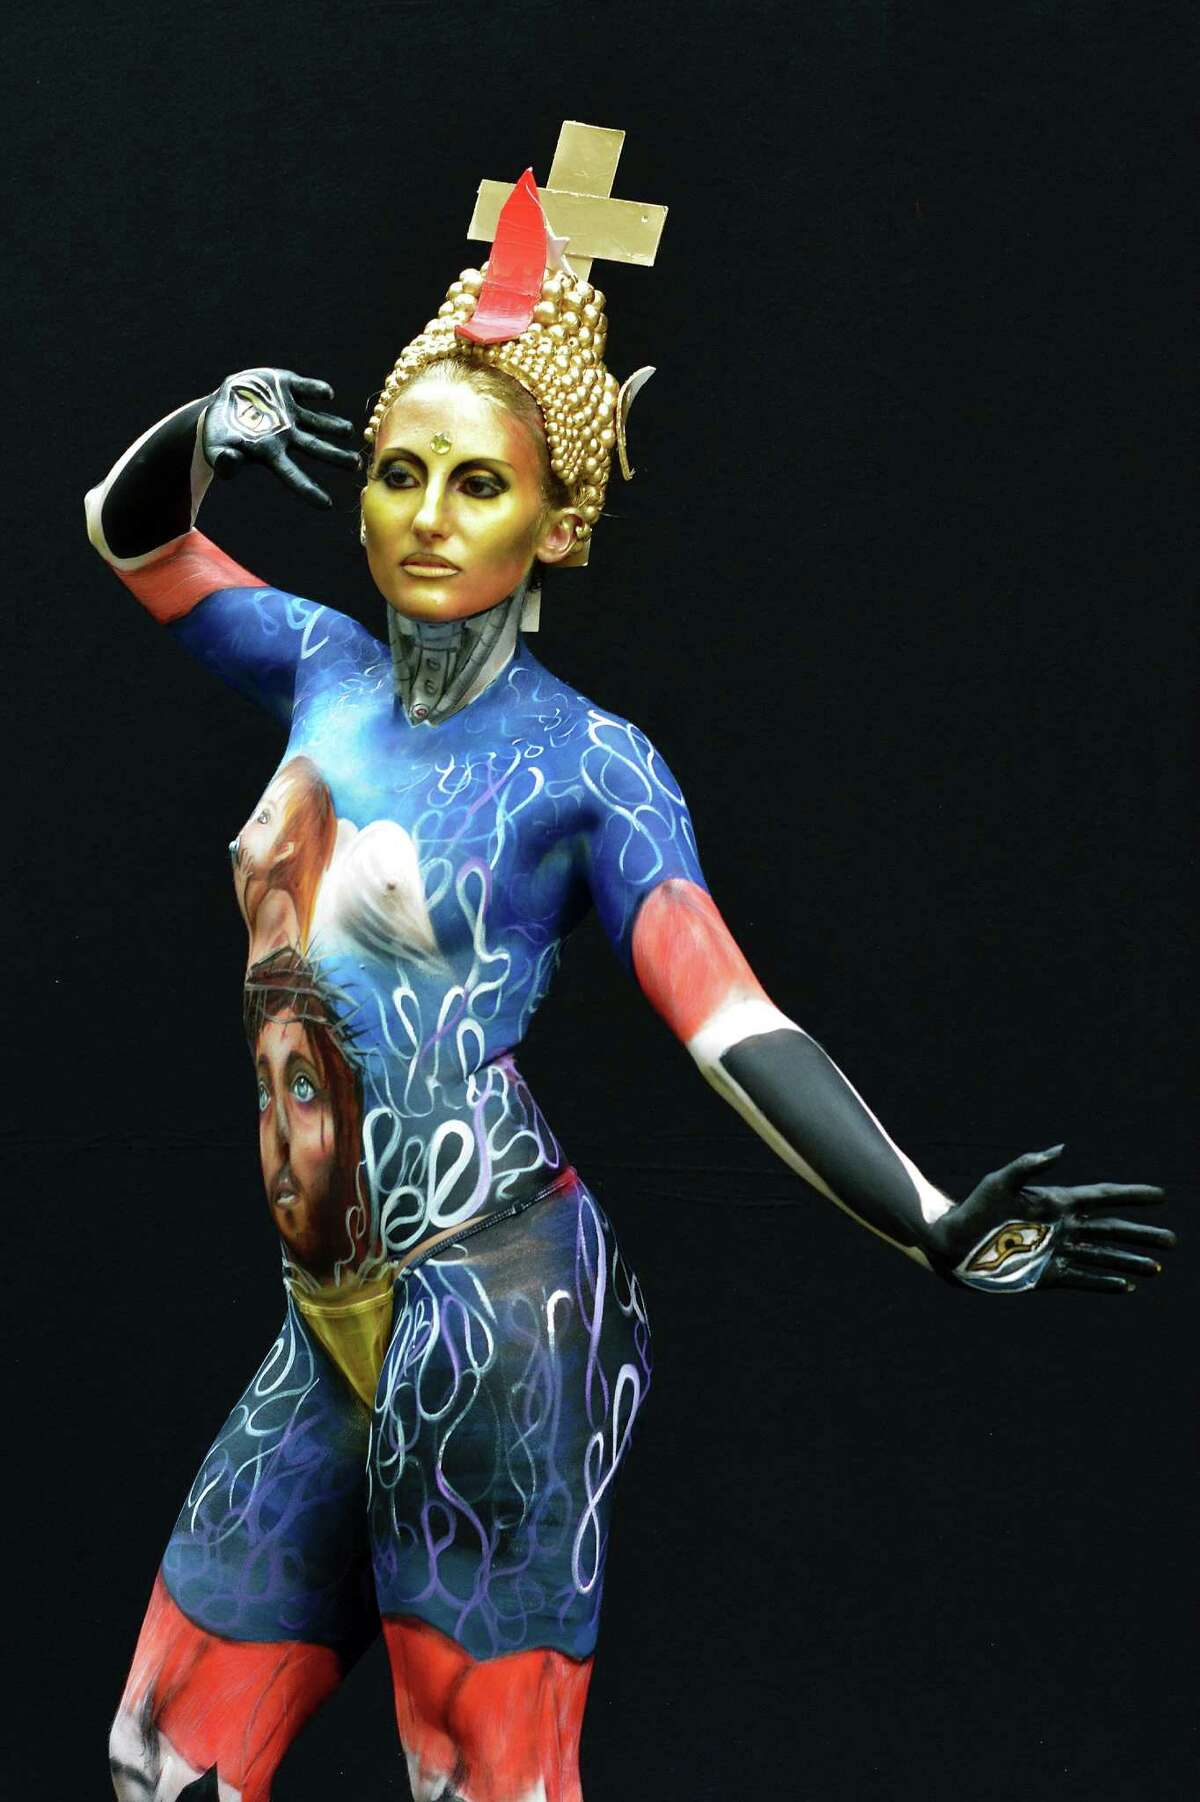 World Bodypainting Festival: Striking images show the